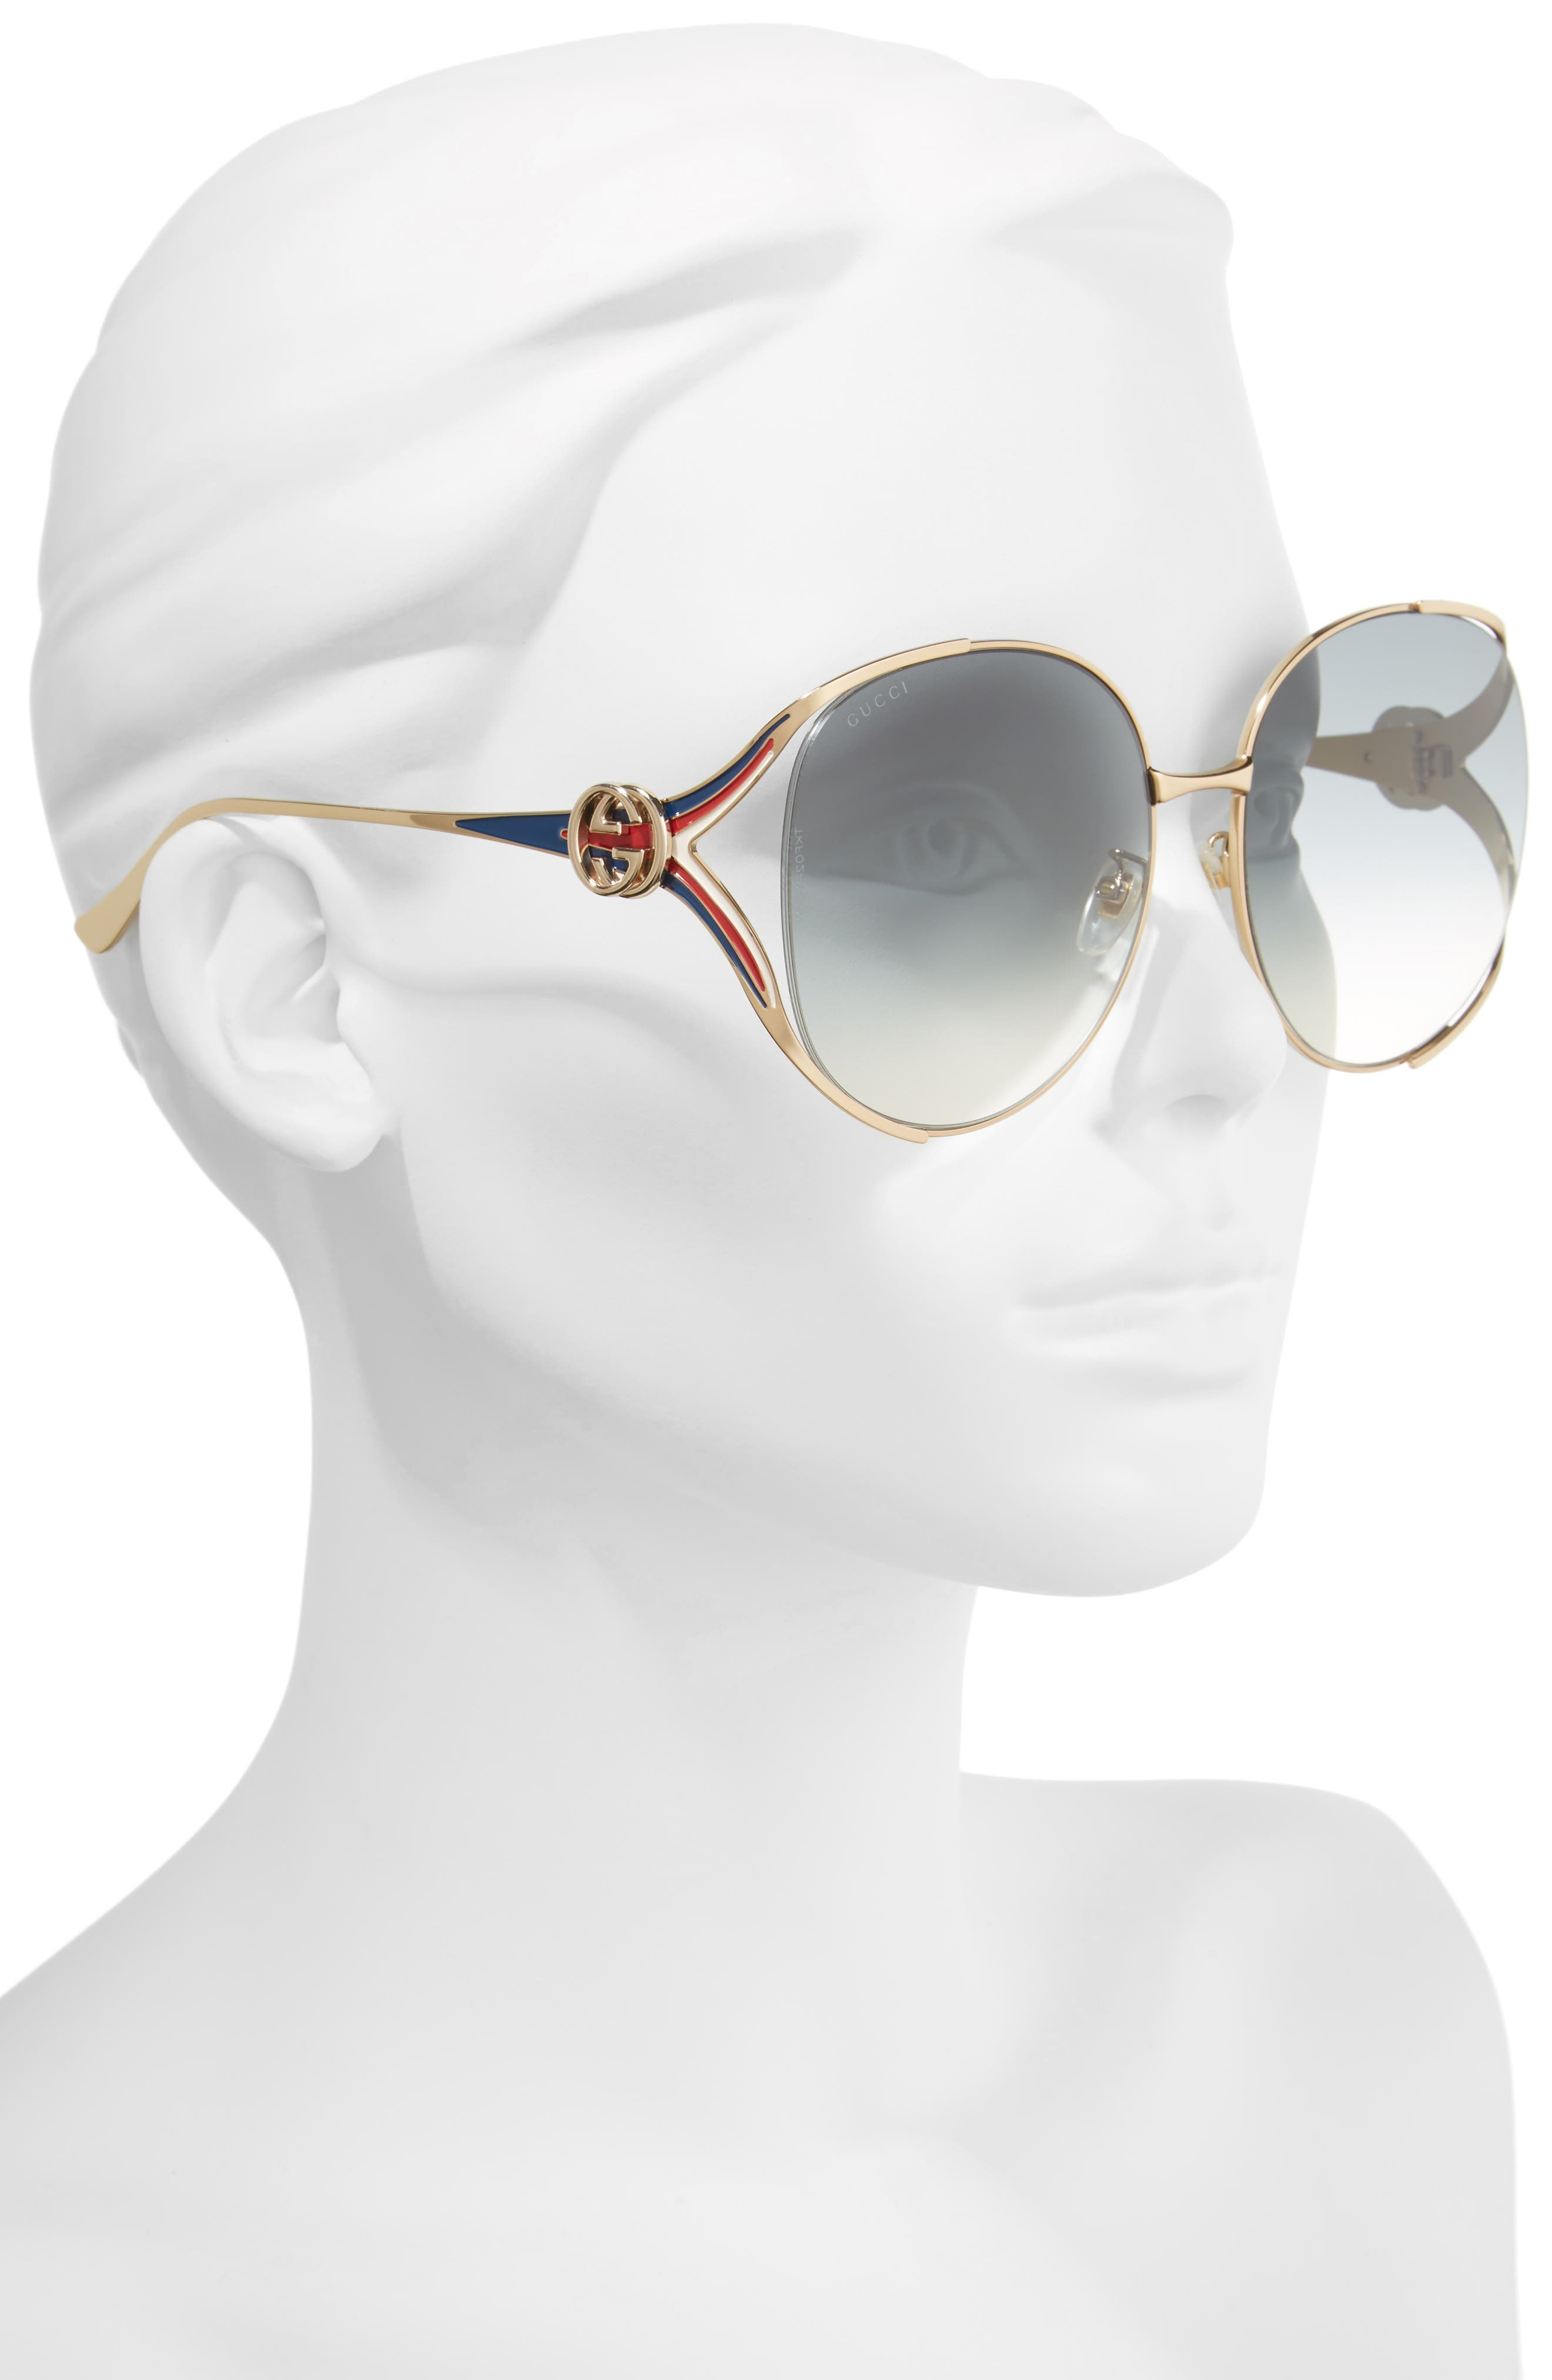 GUCCI, 63mm Open Temple Sunglasses, Alternate thumbnail 2, color, GOLD/ GREY